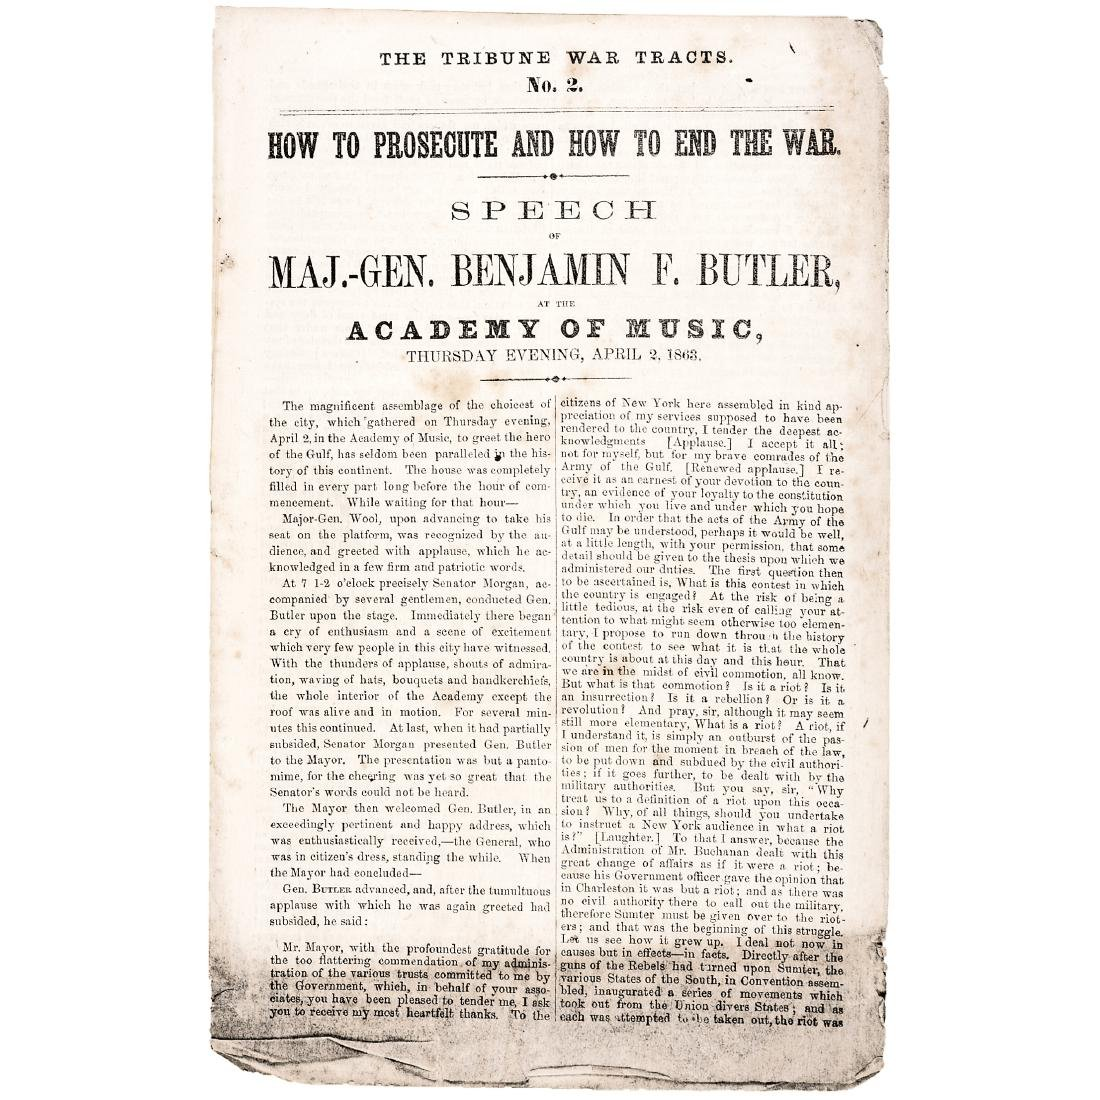 General Benjamin Butler's 1863 Civil War Speech